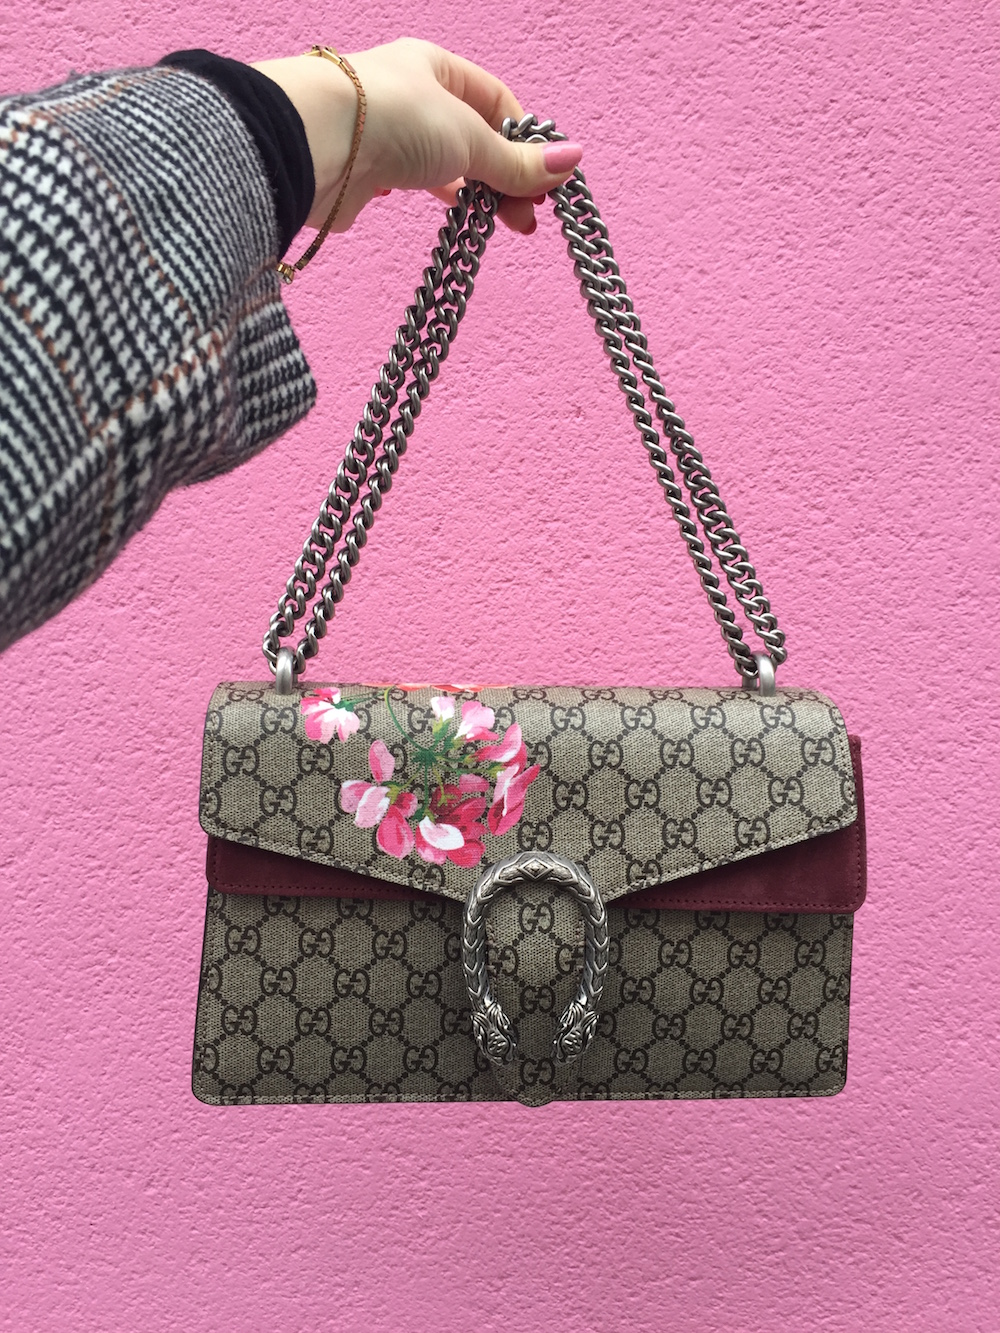 My new beautiful Gucci Bag